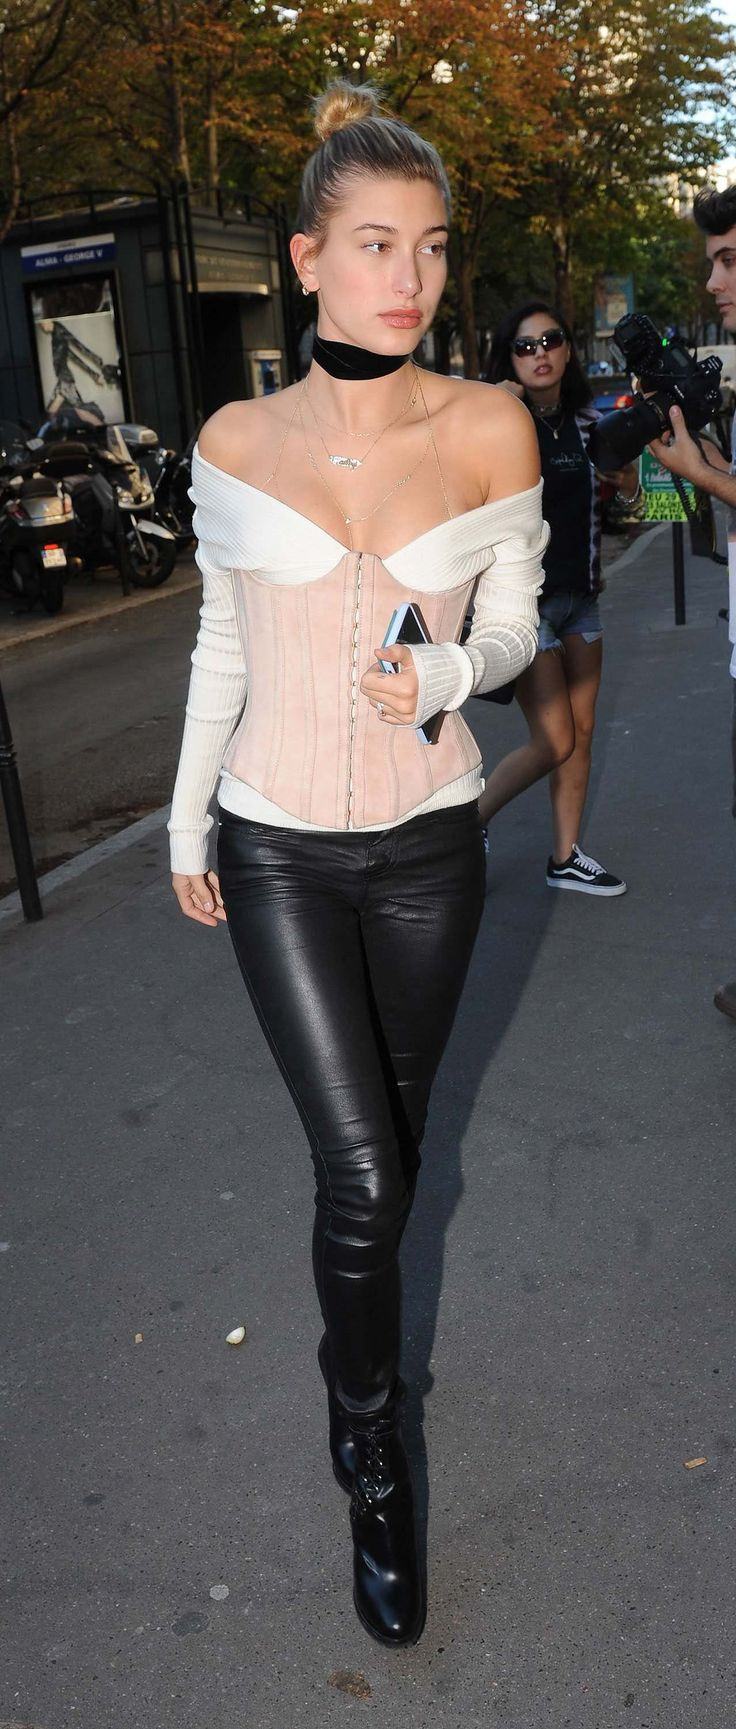 Hailey Baldwin: The Corset - After a summer of stars in deconstructed corsets, it was refreshing to see Baldwin do it the model-off-duty way, with skinny leather leggings and thick-soled boots.